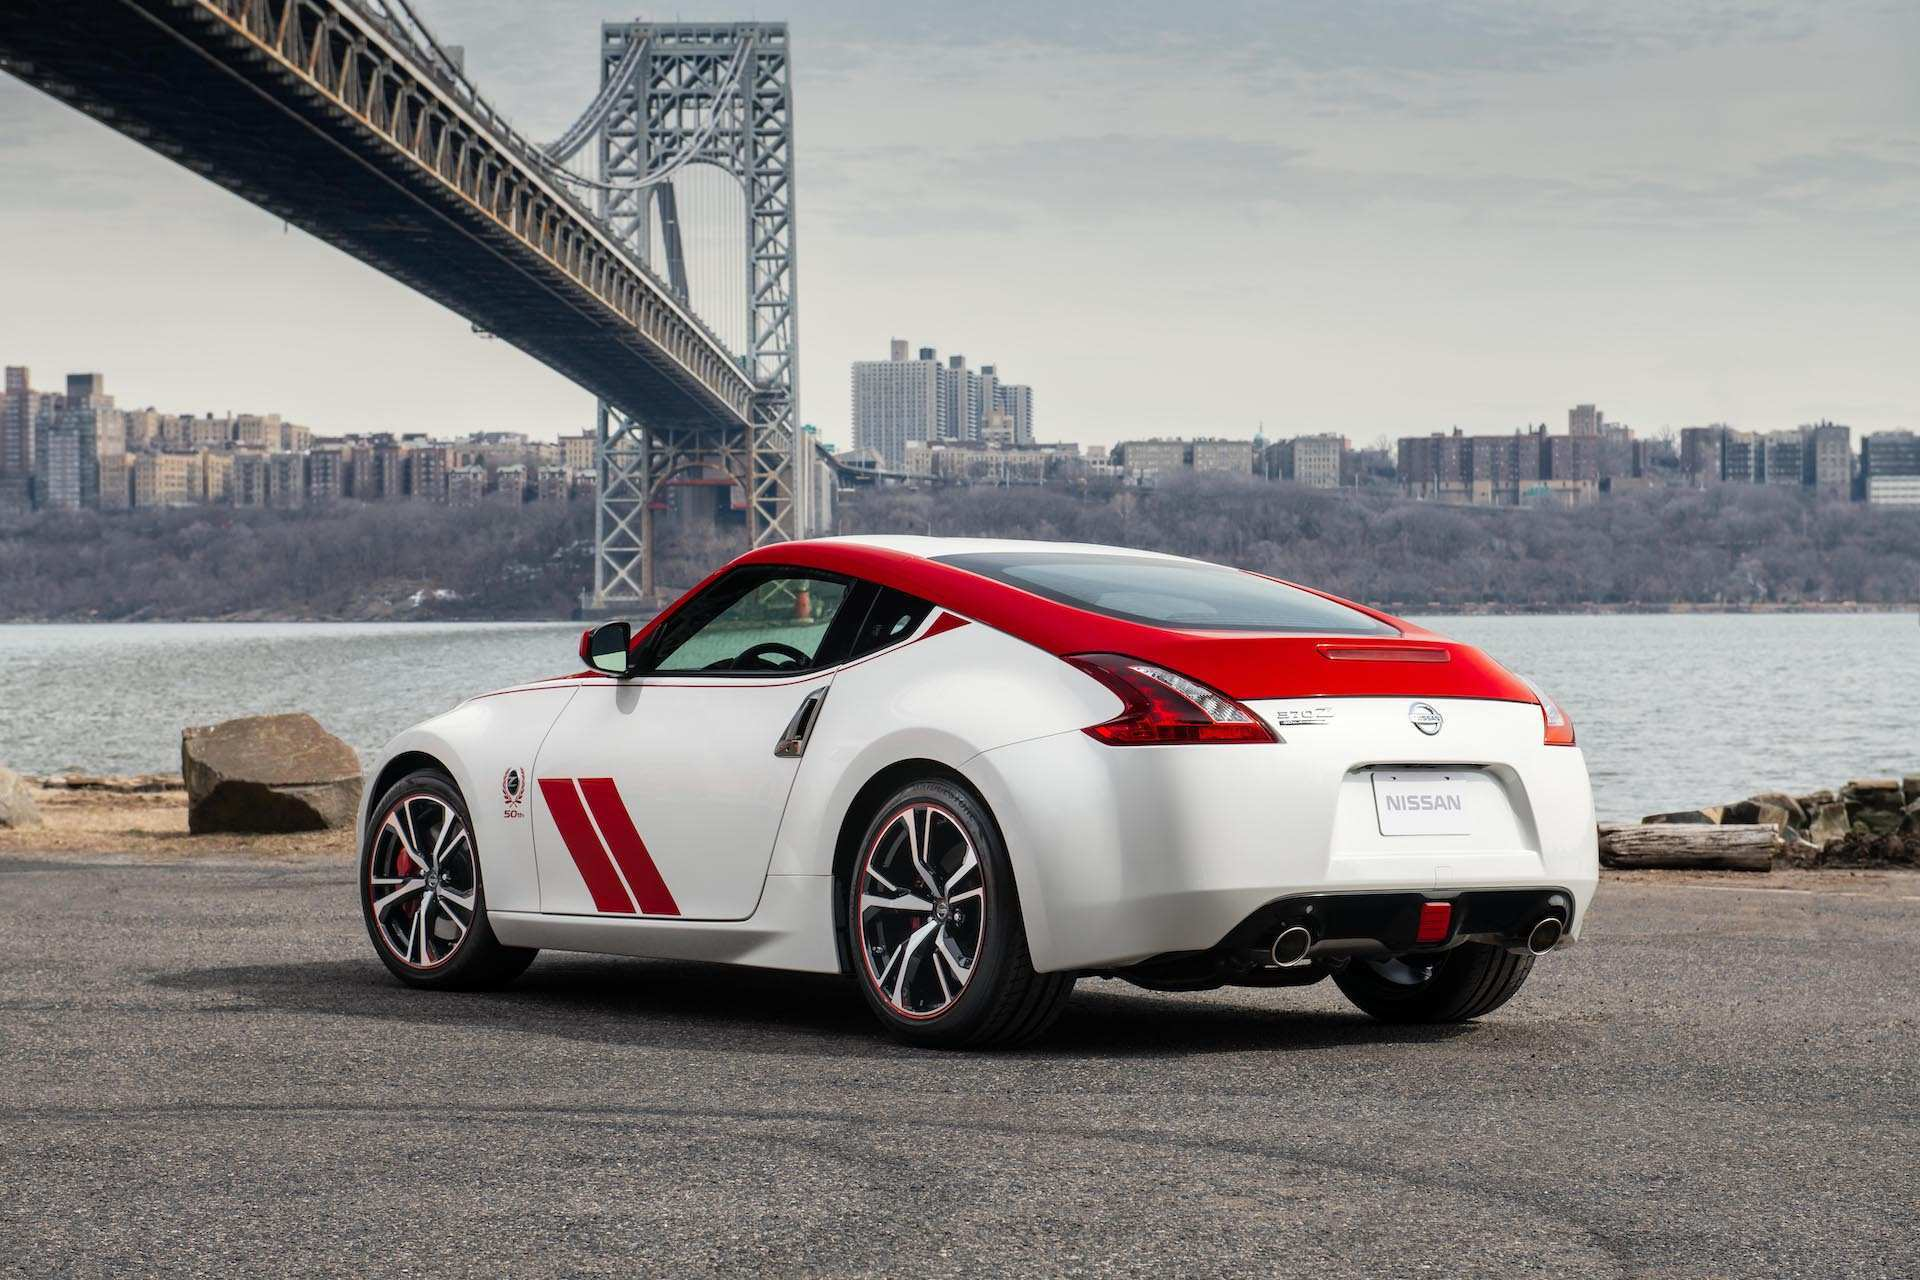 53 All New Nissan Z Car 2020 Engine